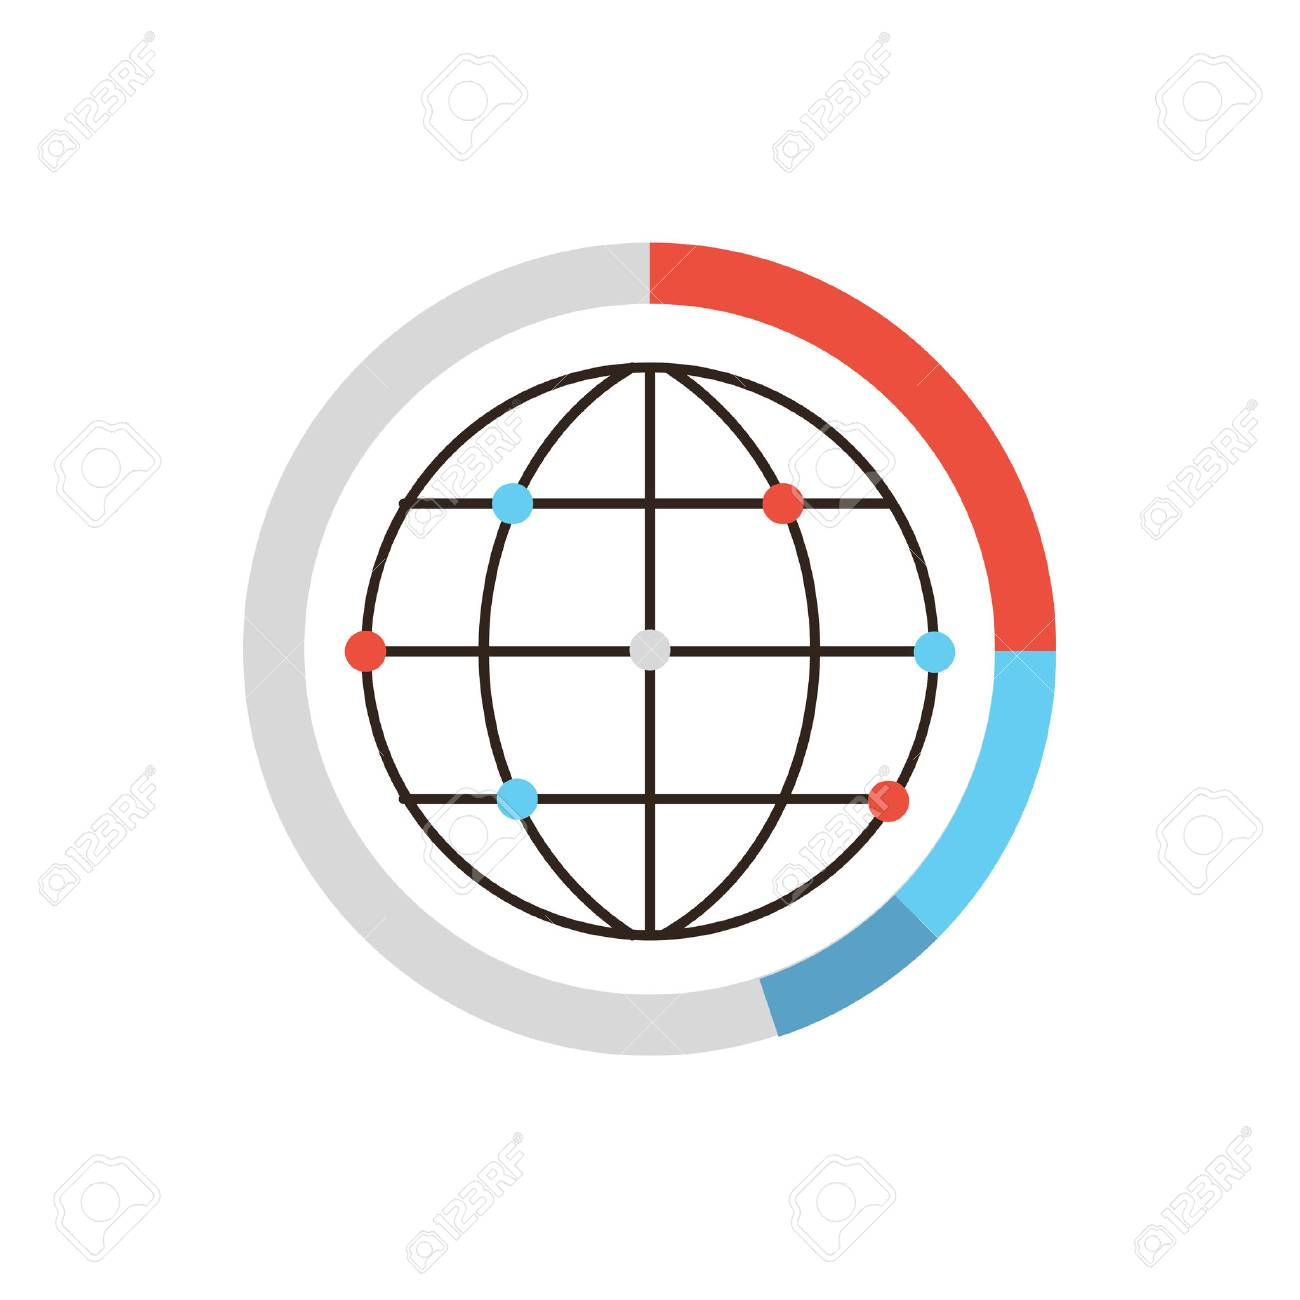 hight resolution of thin line icon with flat design element of global data graph and diagram world network